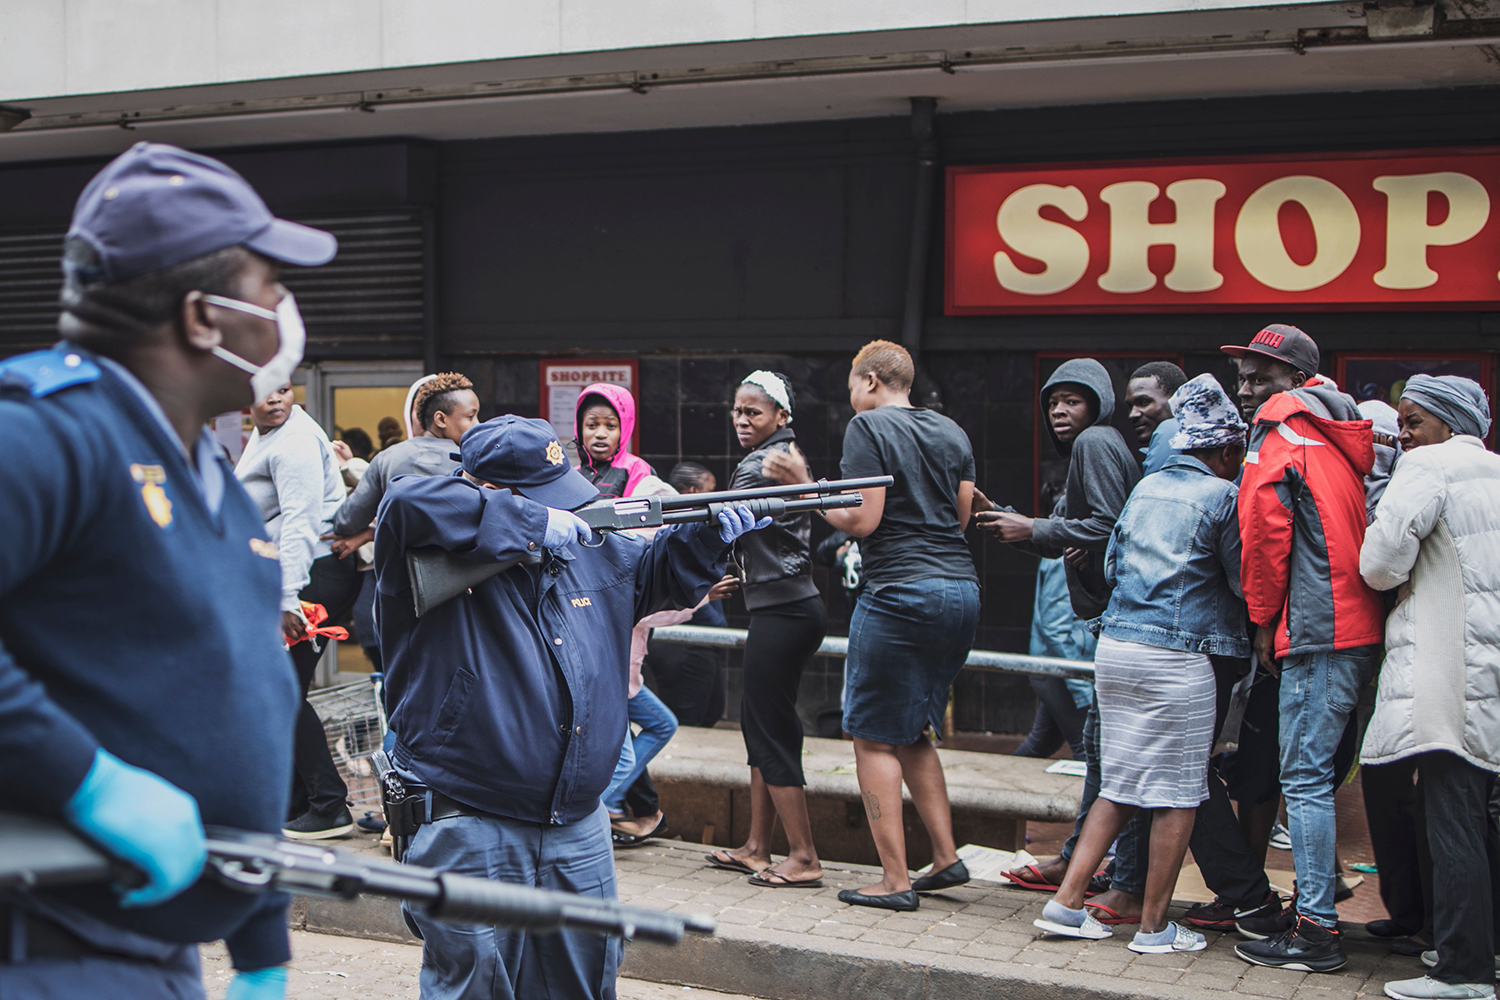 A South African policeman points his pump rifle to disperse a crowd of shoppers in Yeoville, Johannesburg, on March 28 while trying to enforce a distancing measures outside a supermarket amid concern about the spread of the coronavirus.